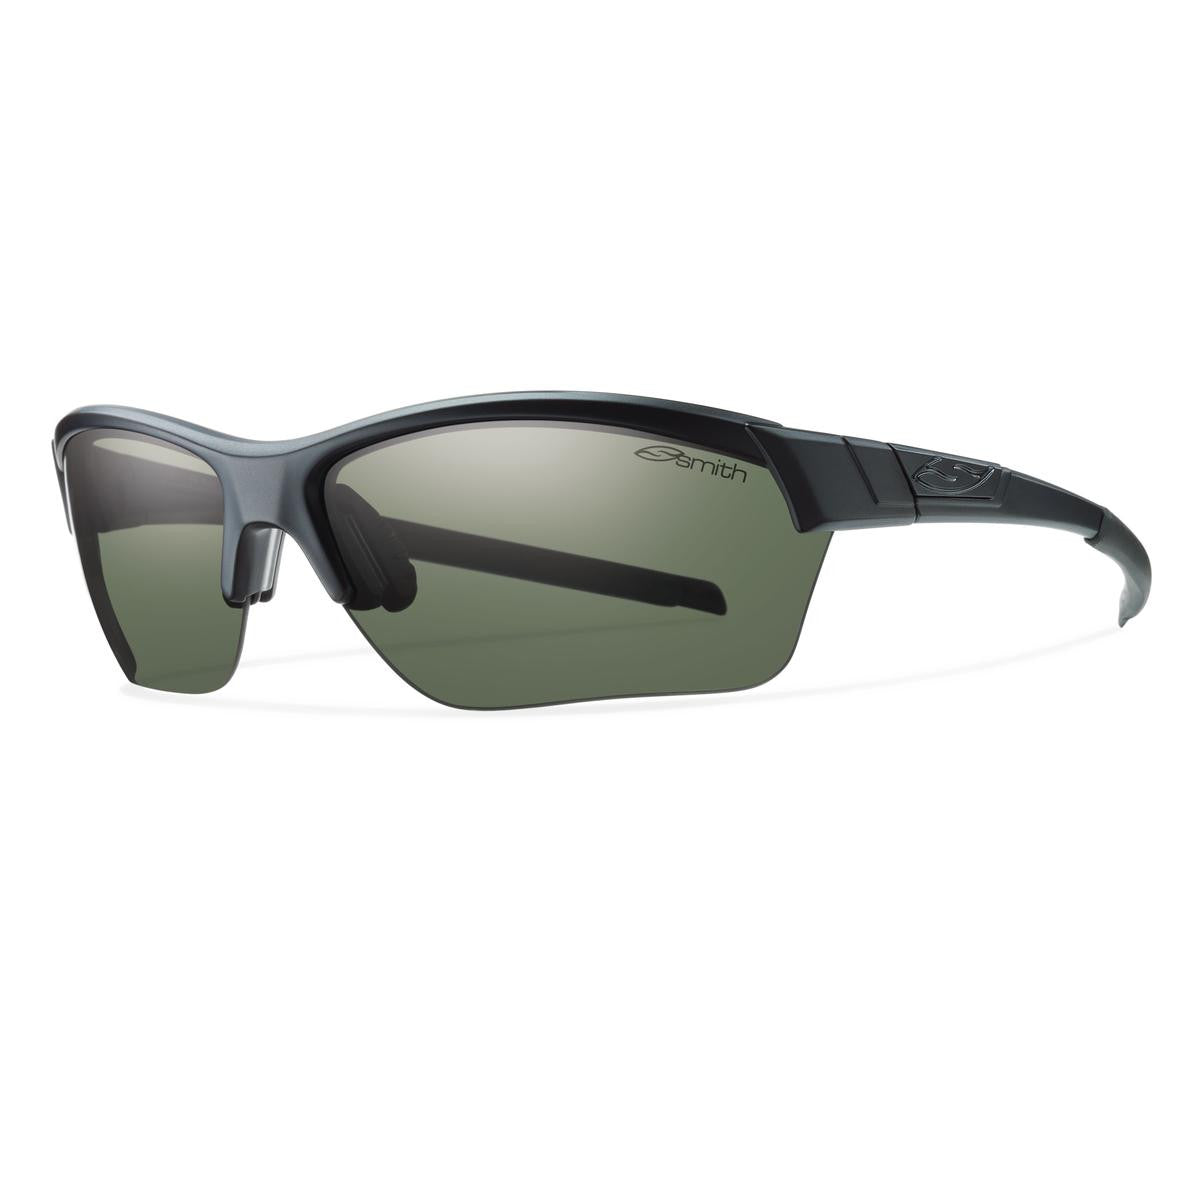 Smith Approach Max Sunglassezs